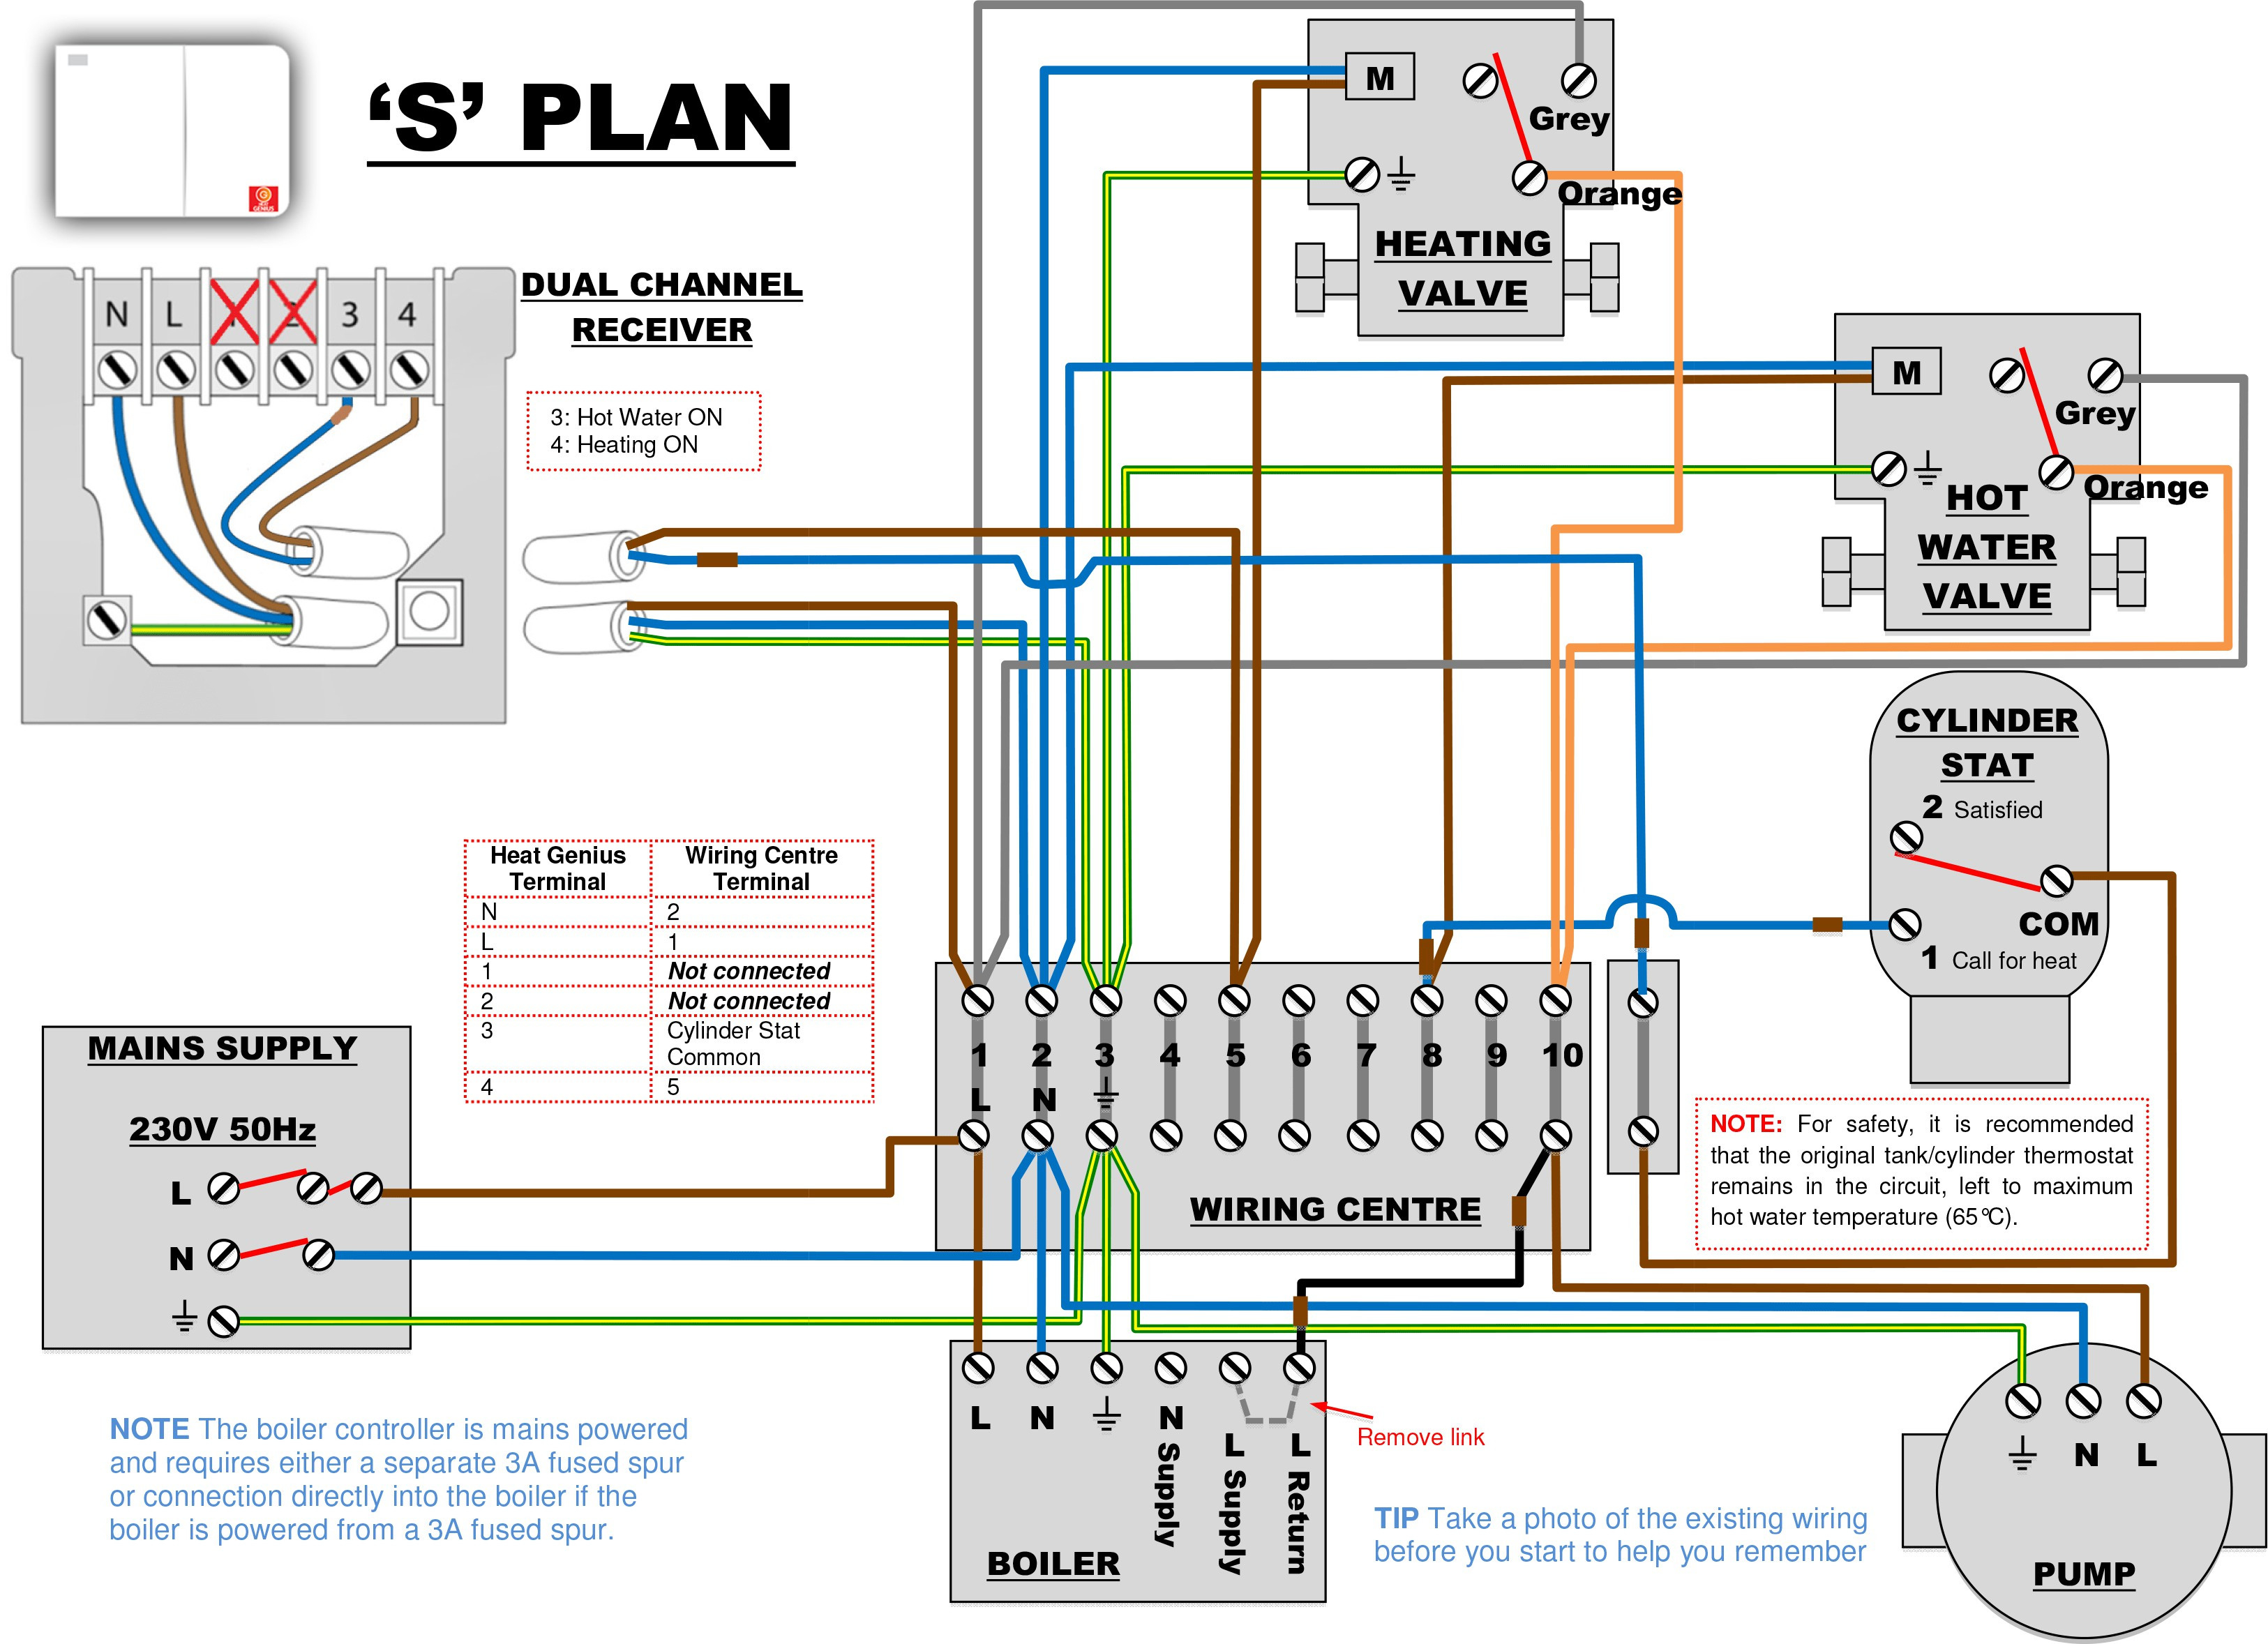 Mears Thermostat Wiring Diagram from wholefoodsonabudget.com